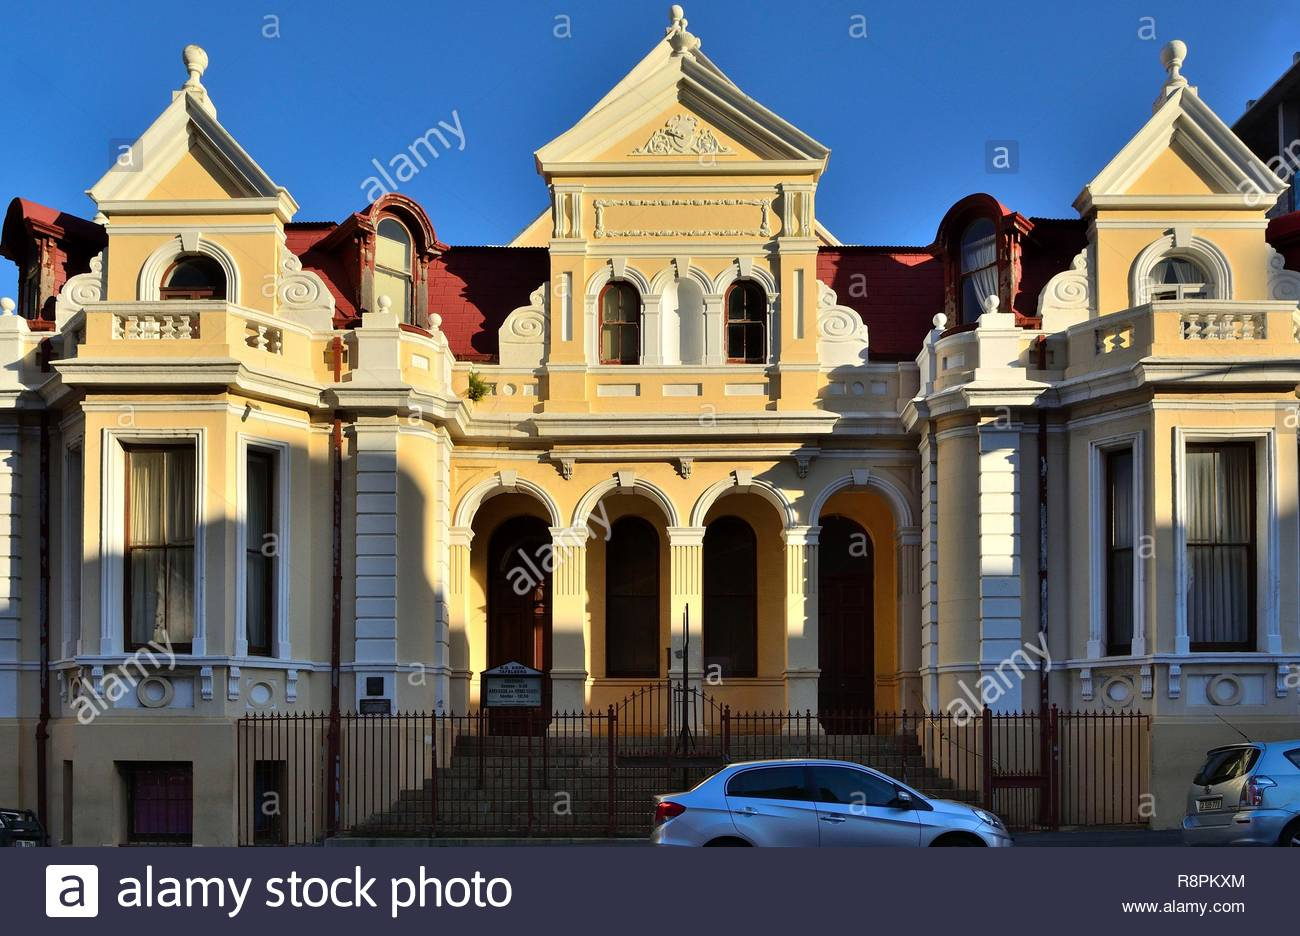 South Africa, Western Cape, Cape Town, City Bowl, Tafelberg Dutch reformed church, Edwardian Baroque style - Stock Image